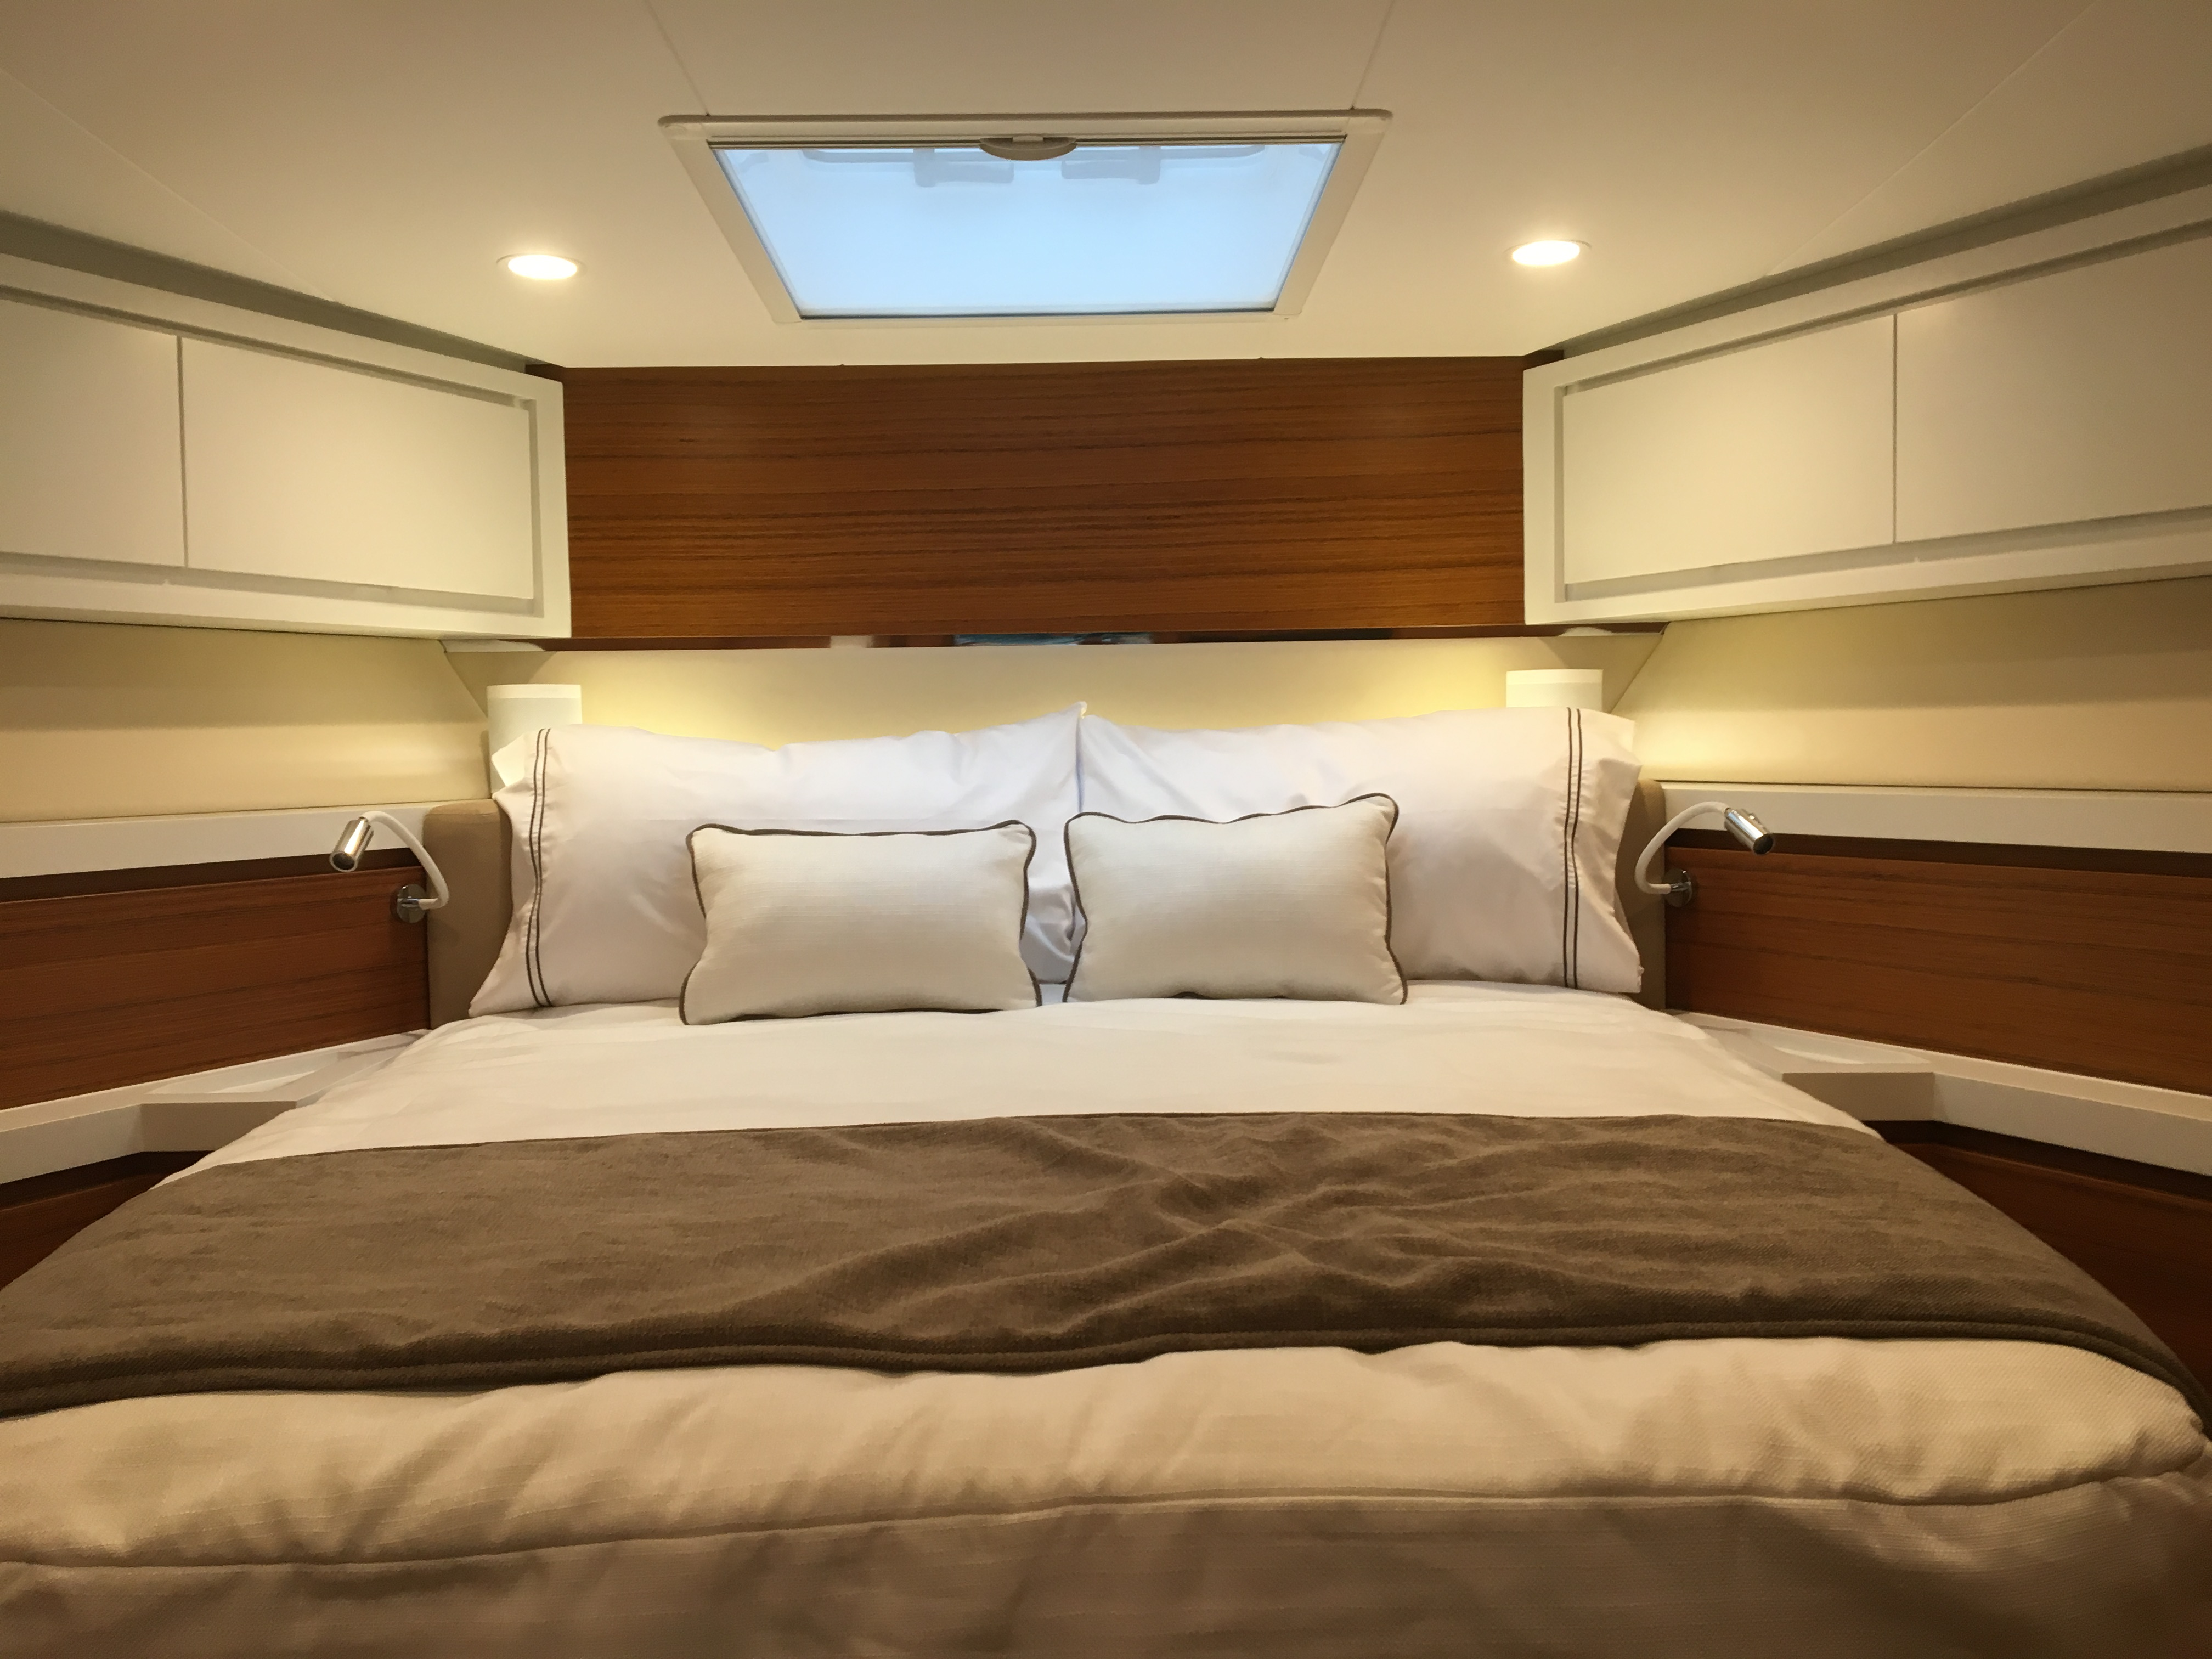 Bertram 61 forward stateroom showing the bed